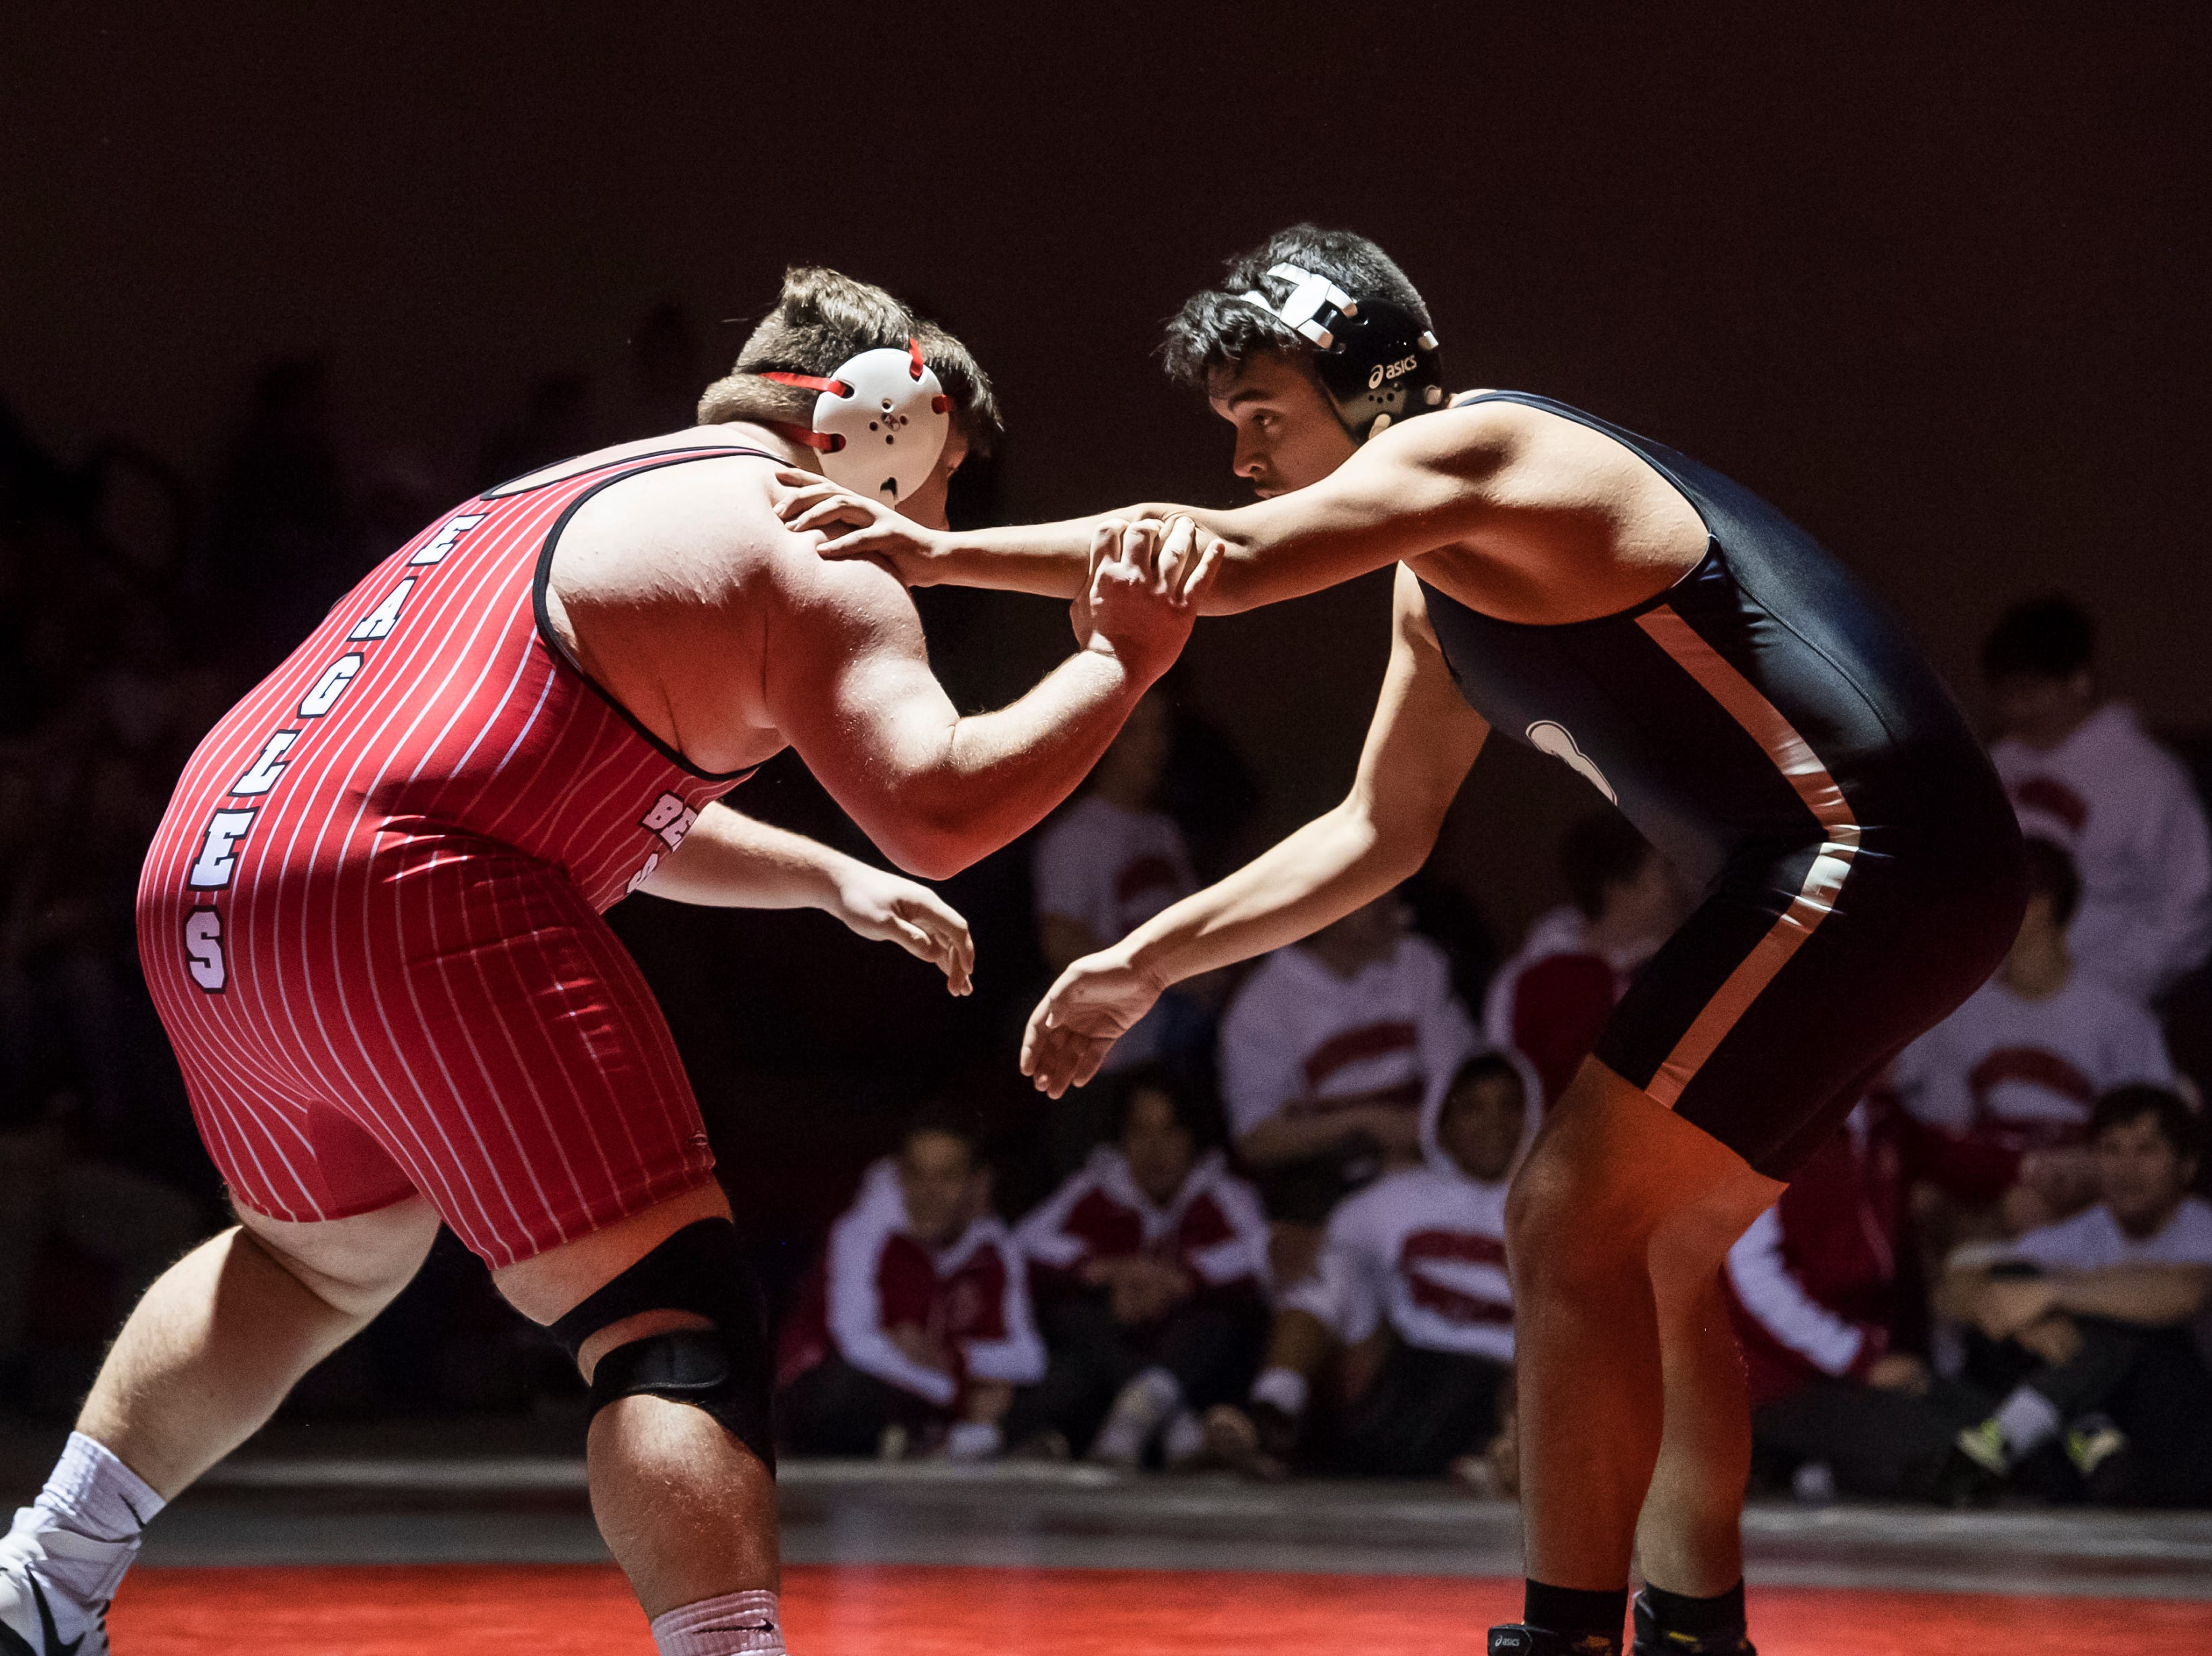 Bermudian Springs' Ryan Lauver, left, wrestles Biglerville's Antoni Esquivias in the 285-pound bout at Bermudian Springs High School on December 13, 2018. Lauver won by fall in 24 seconds and the Eagles won 51-27.